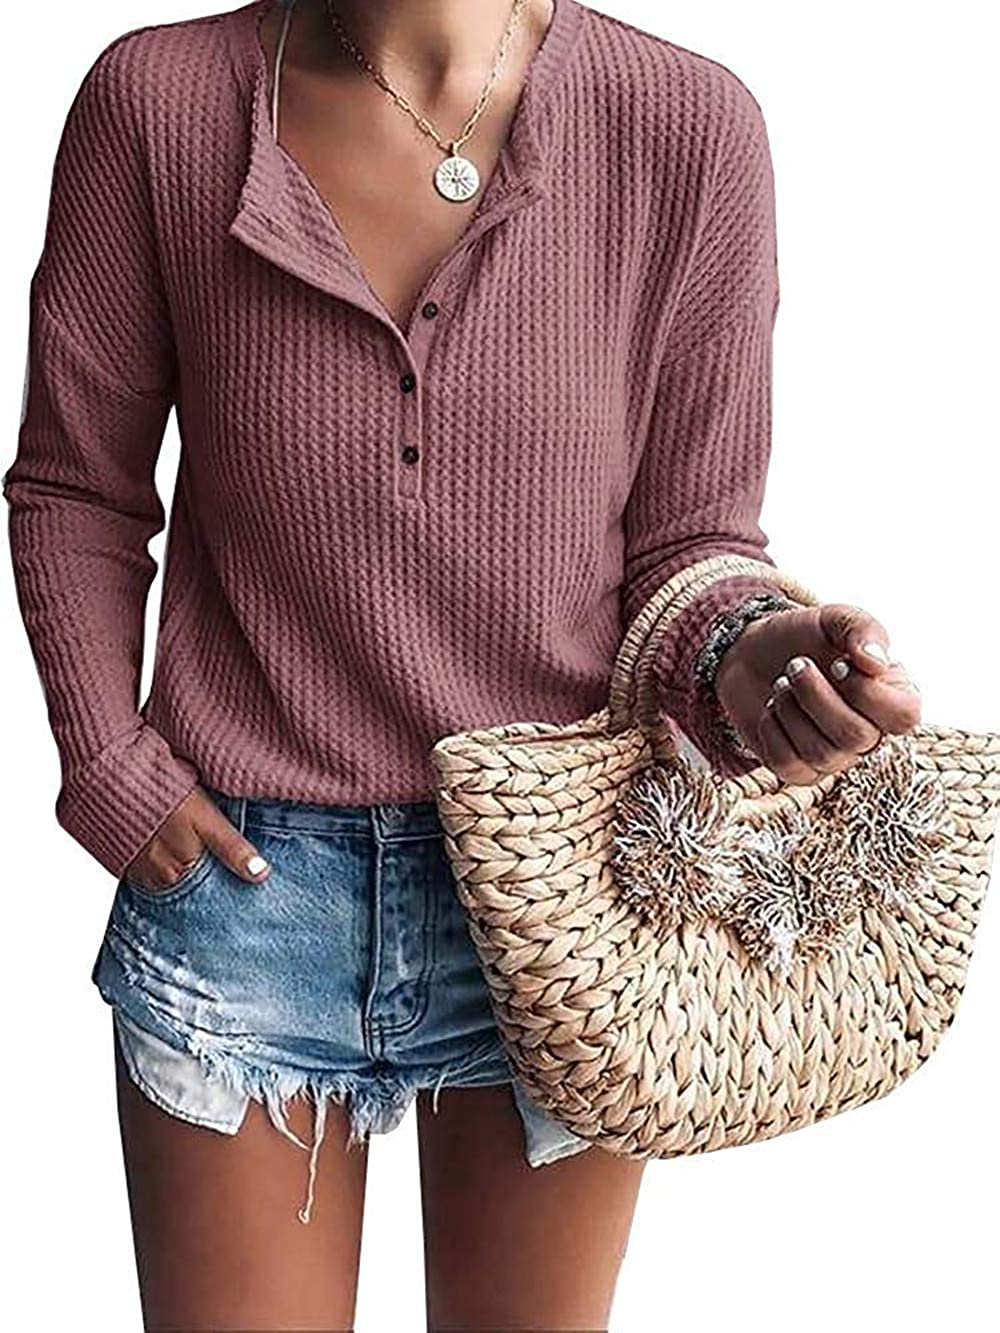 Women's Waffle Knit Tunic Tops Loose Long Sleeve Button Up V Neck Henley Shirts